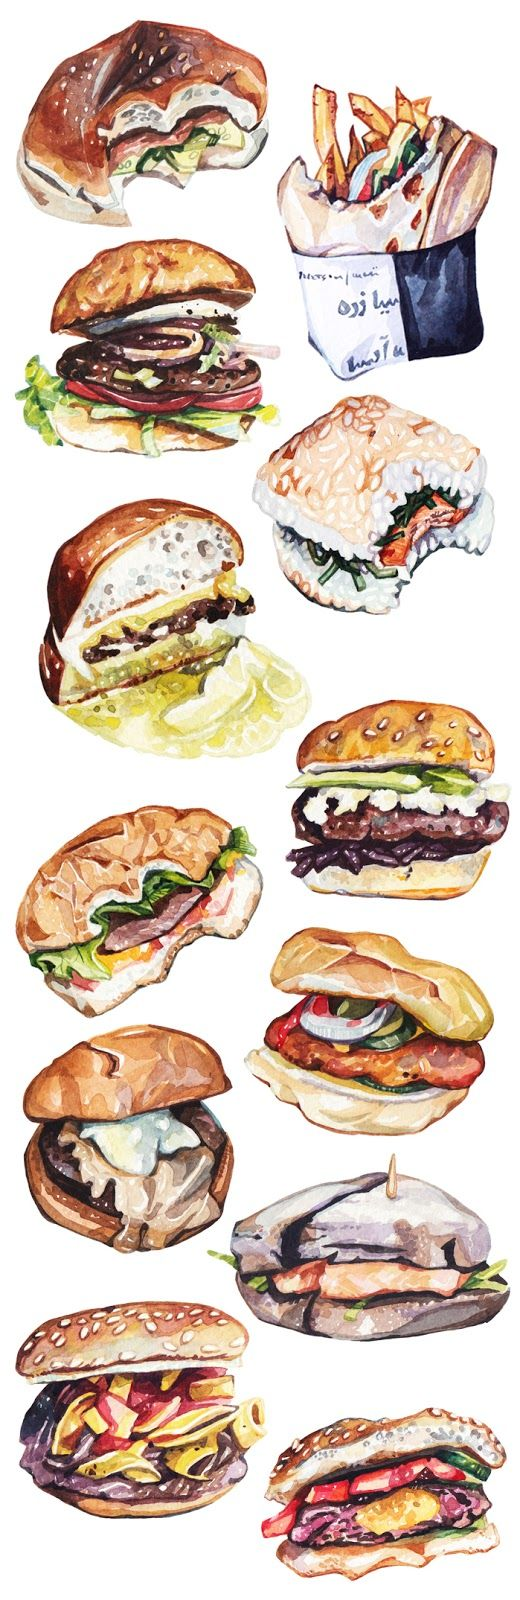 Watercolour Illustrations - Holly Exley Illustrator: BURGERS BURGERS BURGERS BURGERS | Watercolour Illustrations